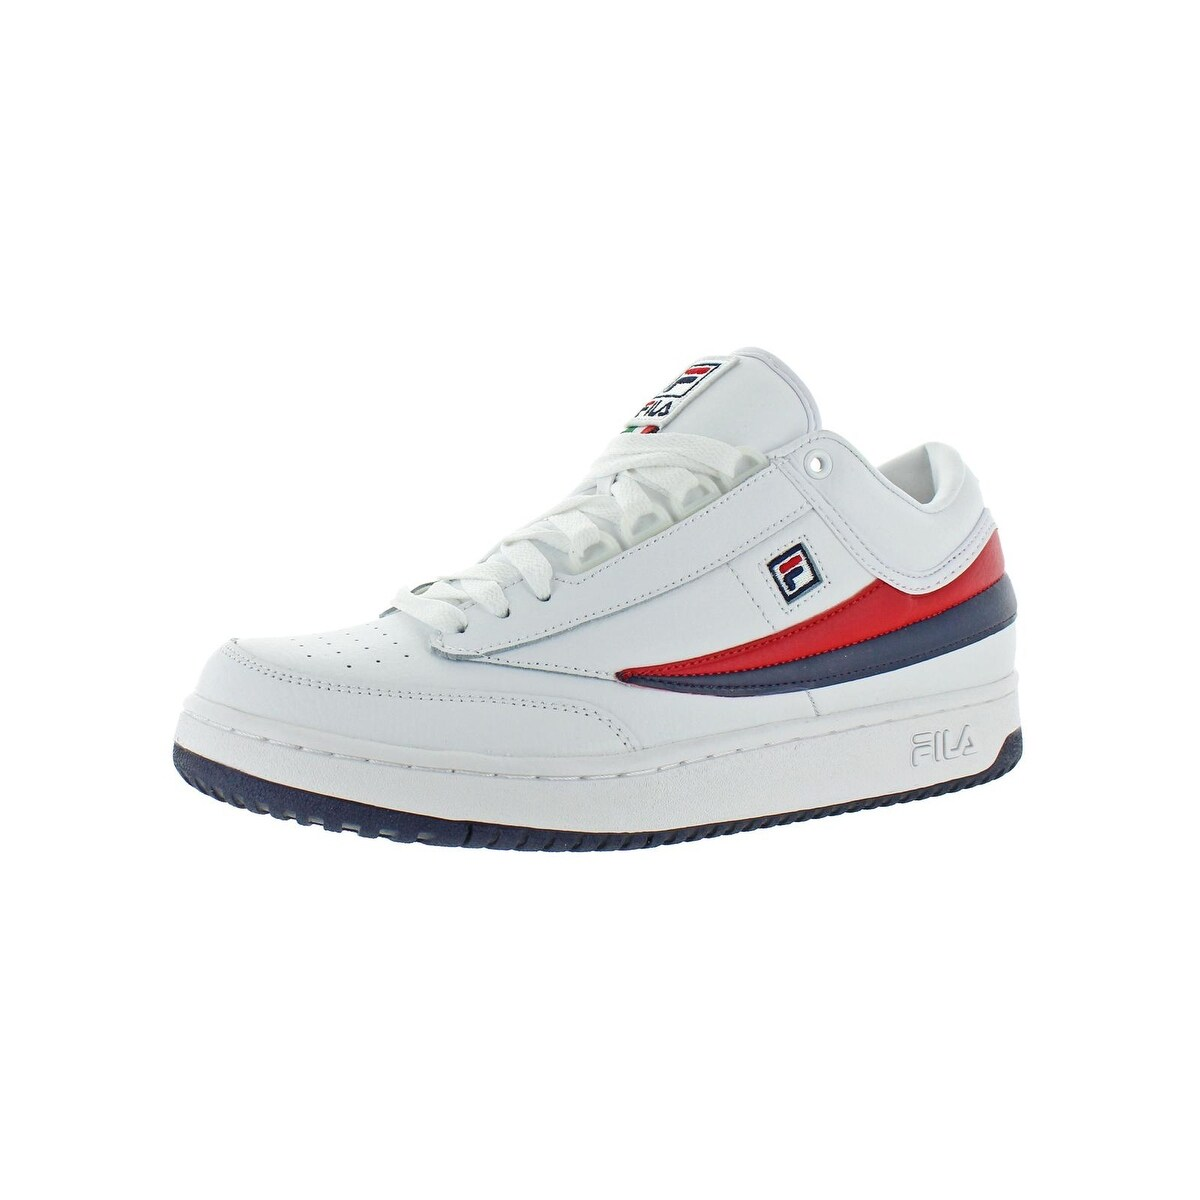 Best Online ShoesShop At Fila Clothingamp; Deals White Our 9WEH2IYD